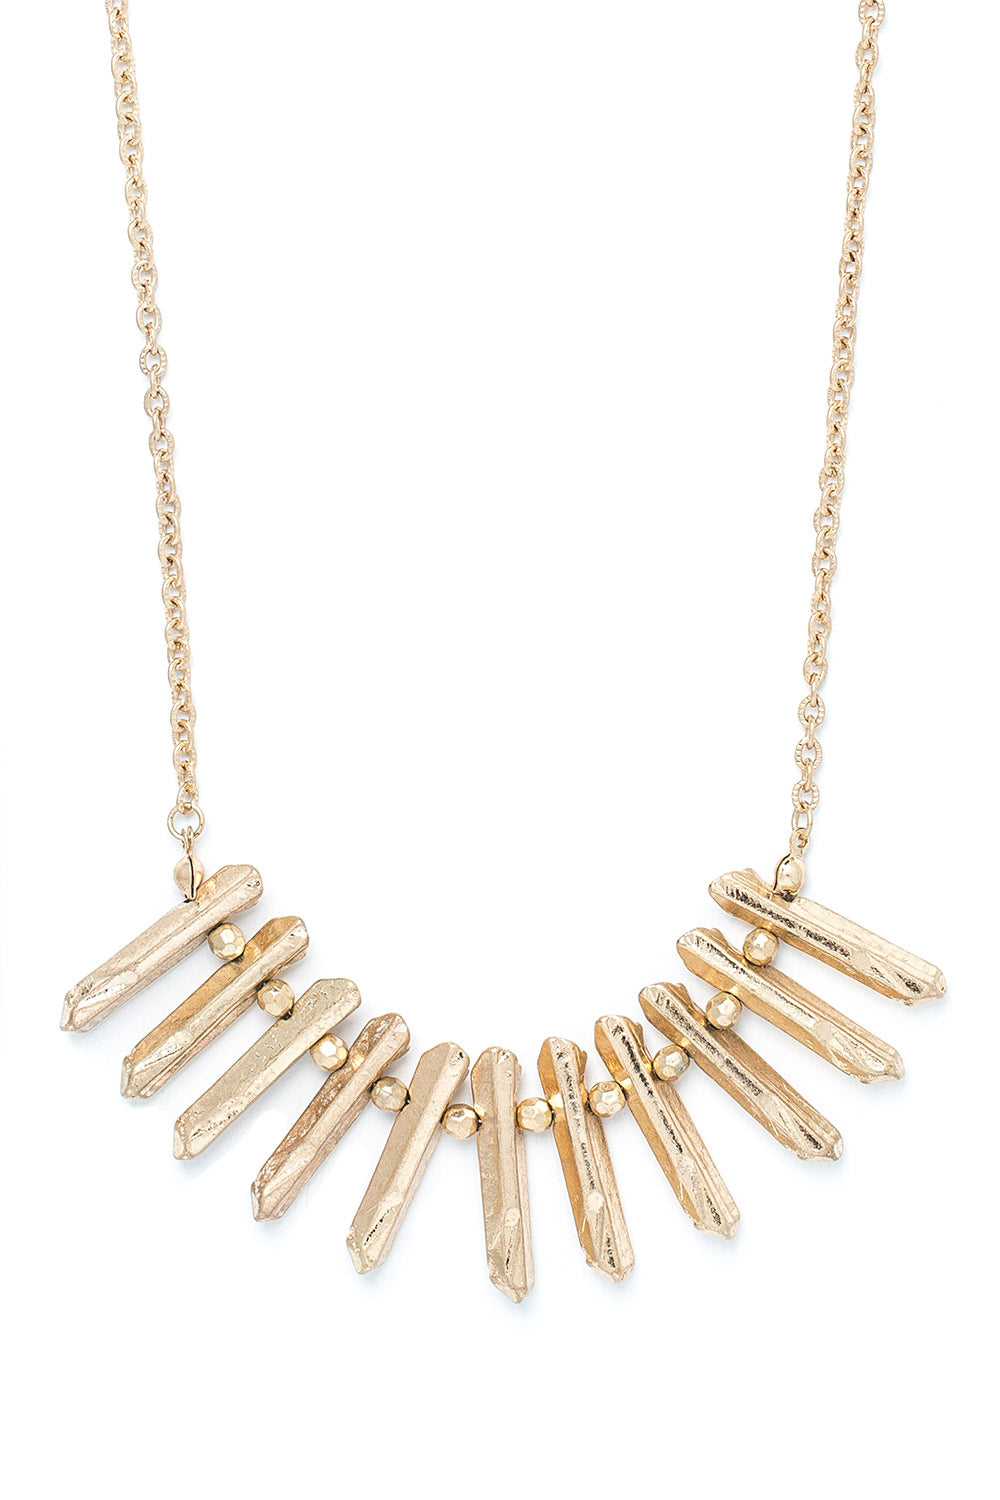 Type 3 Gold Nugget Necklace